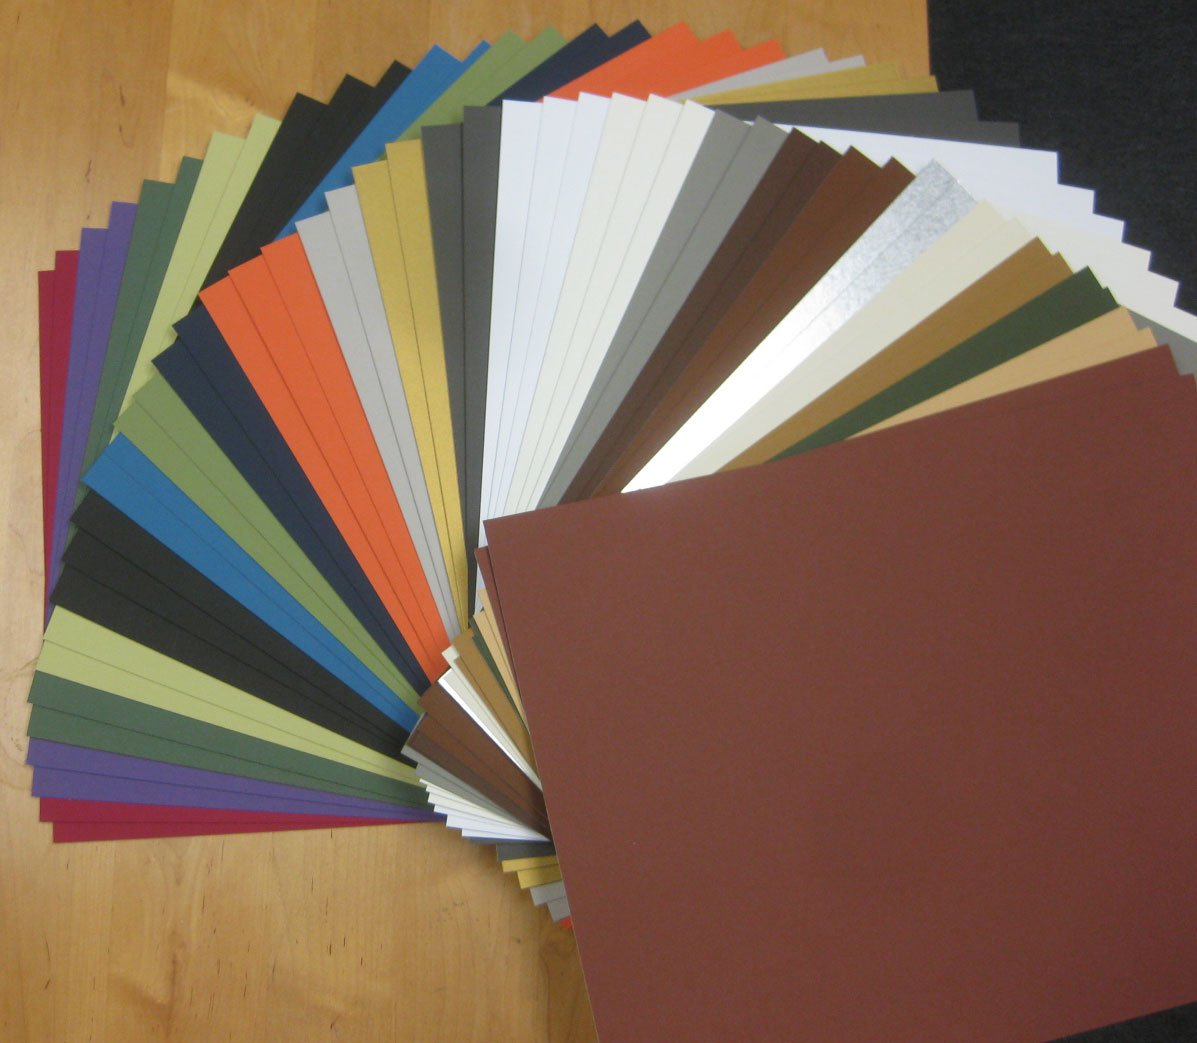 (50) 16x20 Matboard Mat Board Blanks-ASSORTMENT by Golden State Art